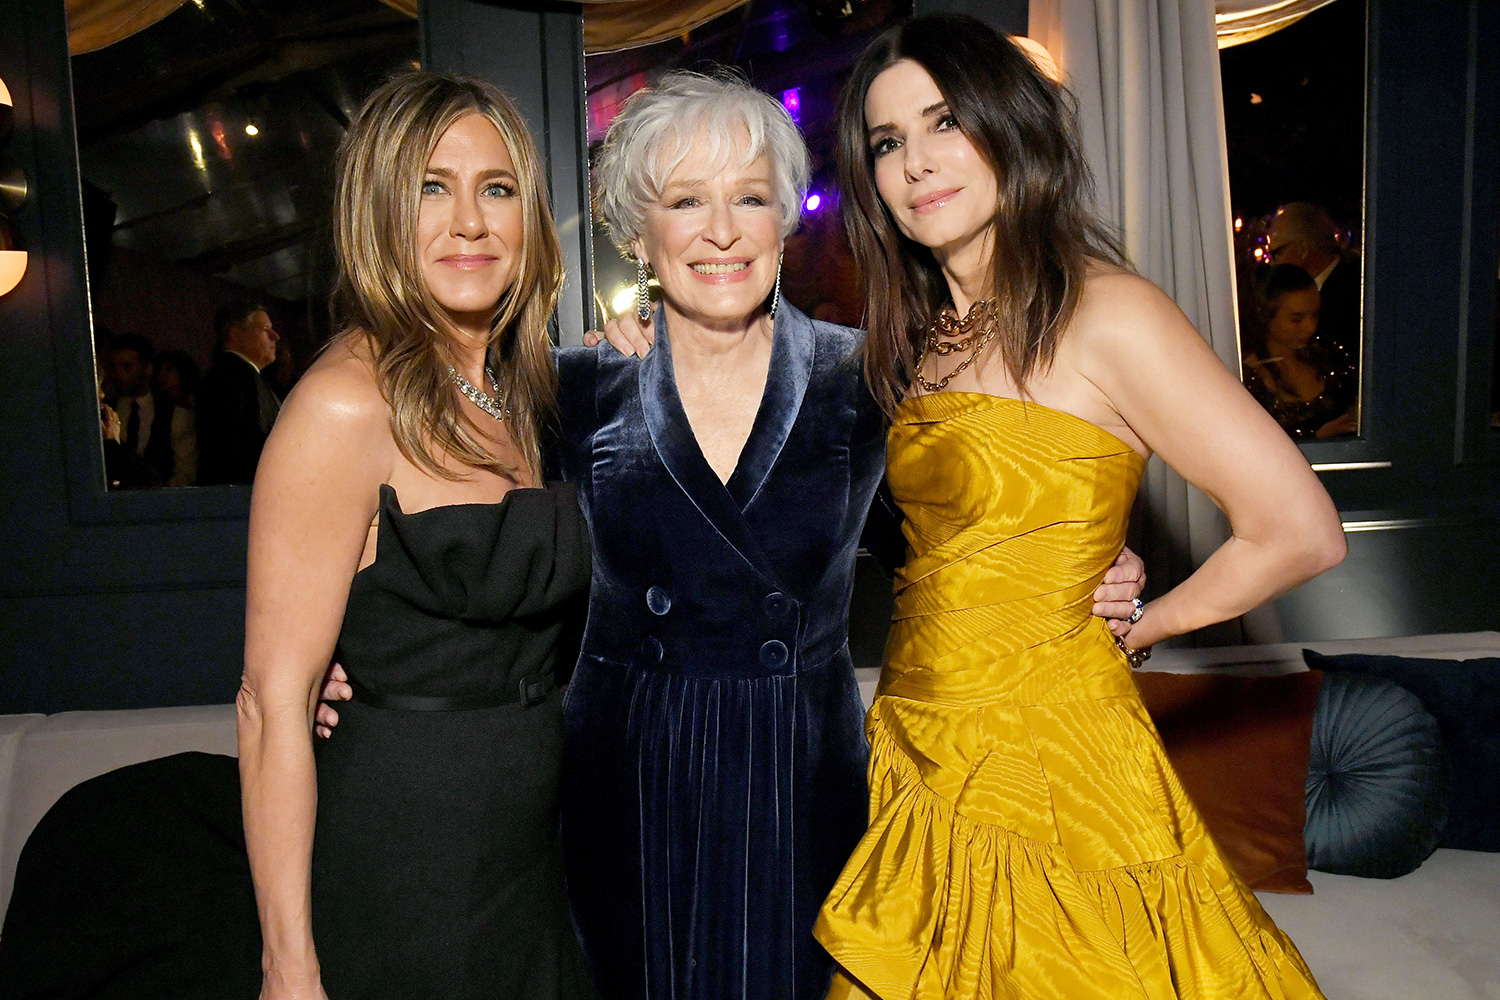 Sandra Bullock, Jennifer Aniston and Glenn Close